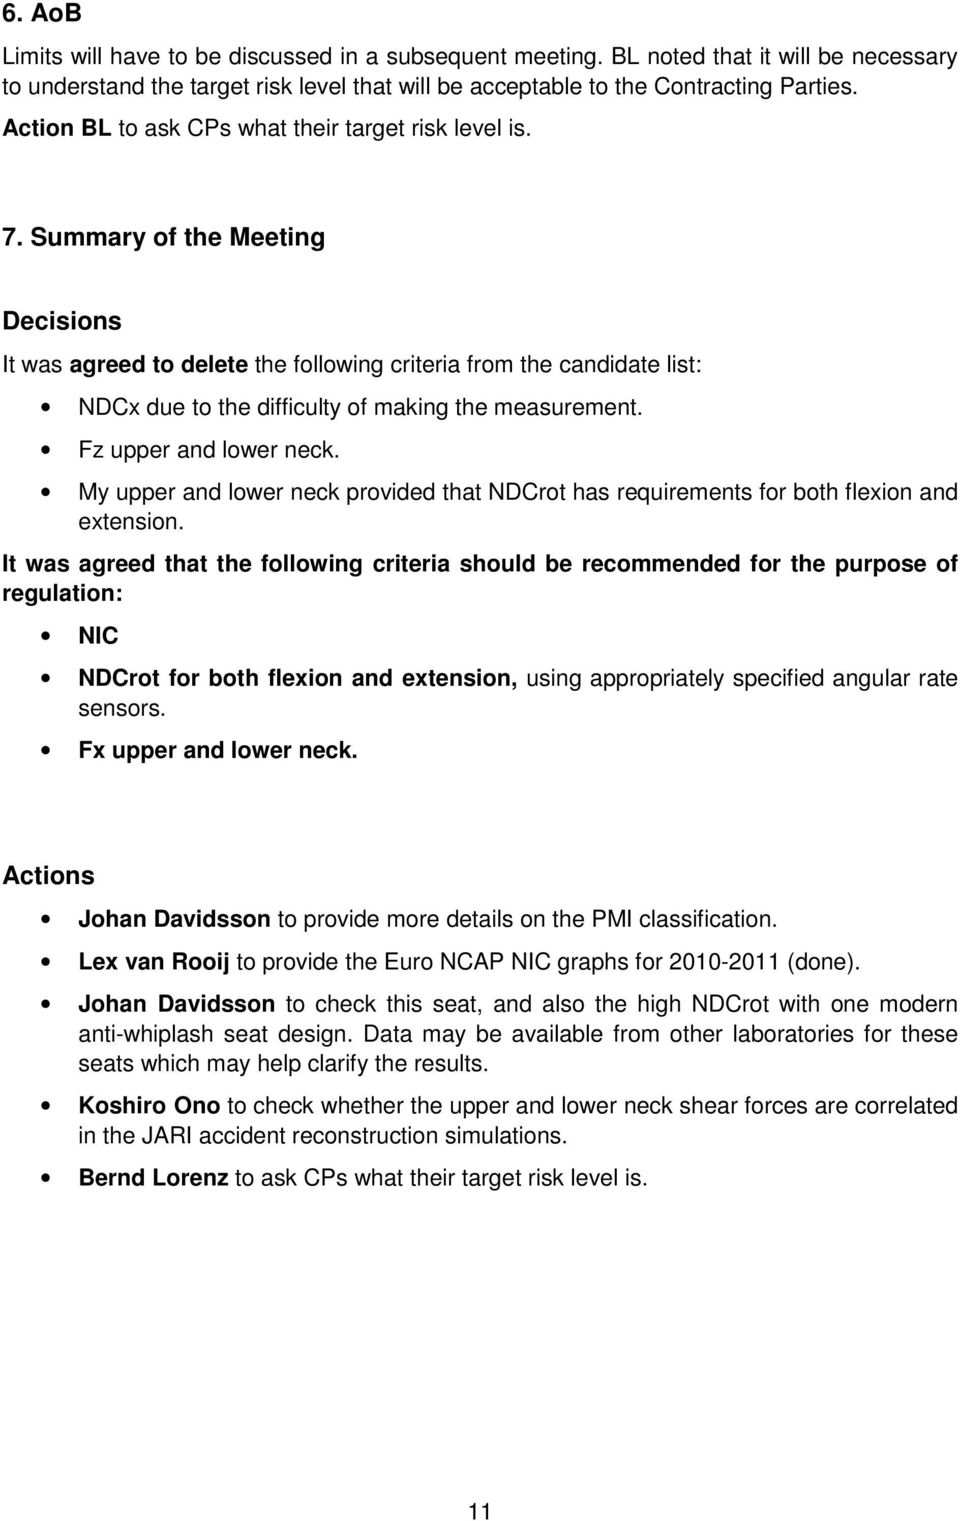 Summary of the Meeting Decisions It was agreed to delete the following criteria from the candidate list: NDCx due to the difficulty of making the measurement. Fz upper and lower neck.